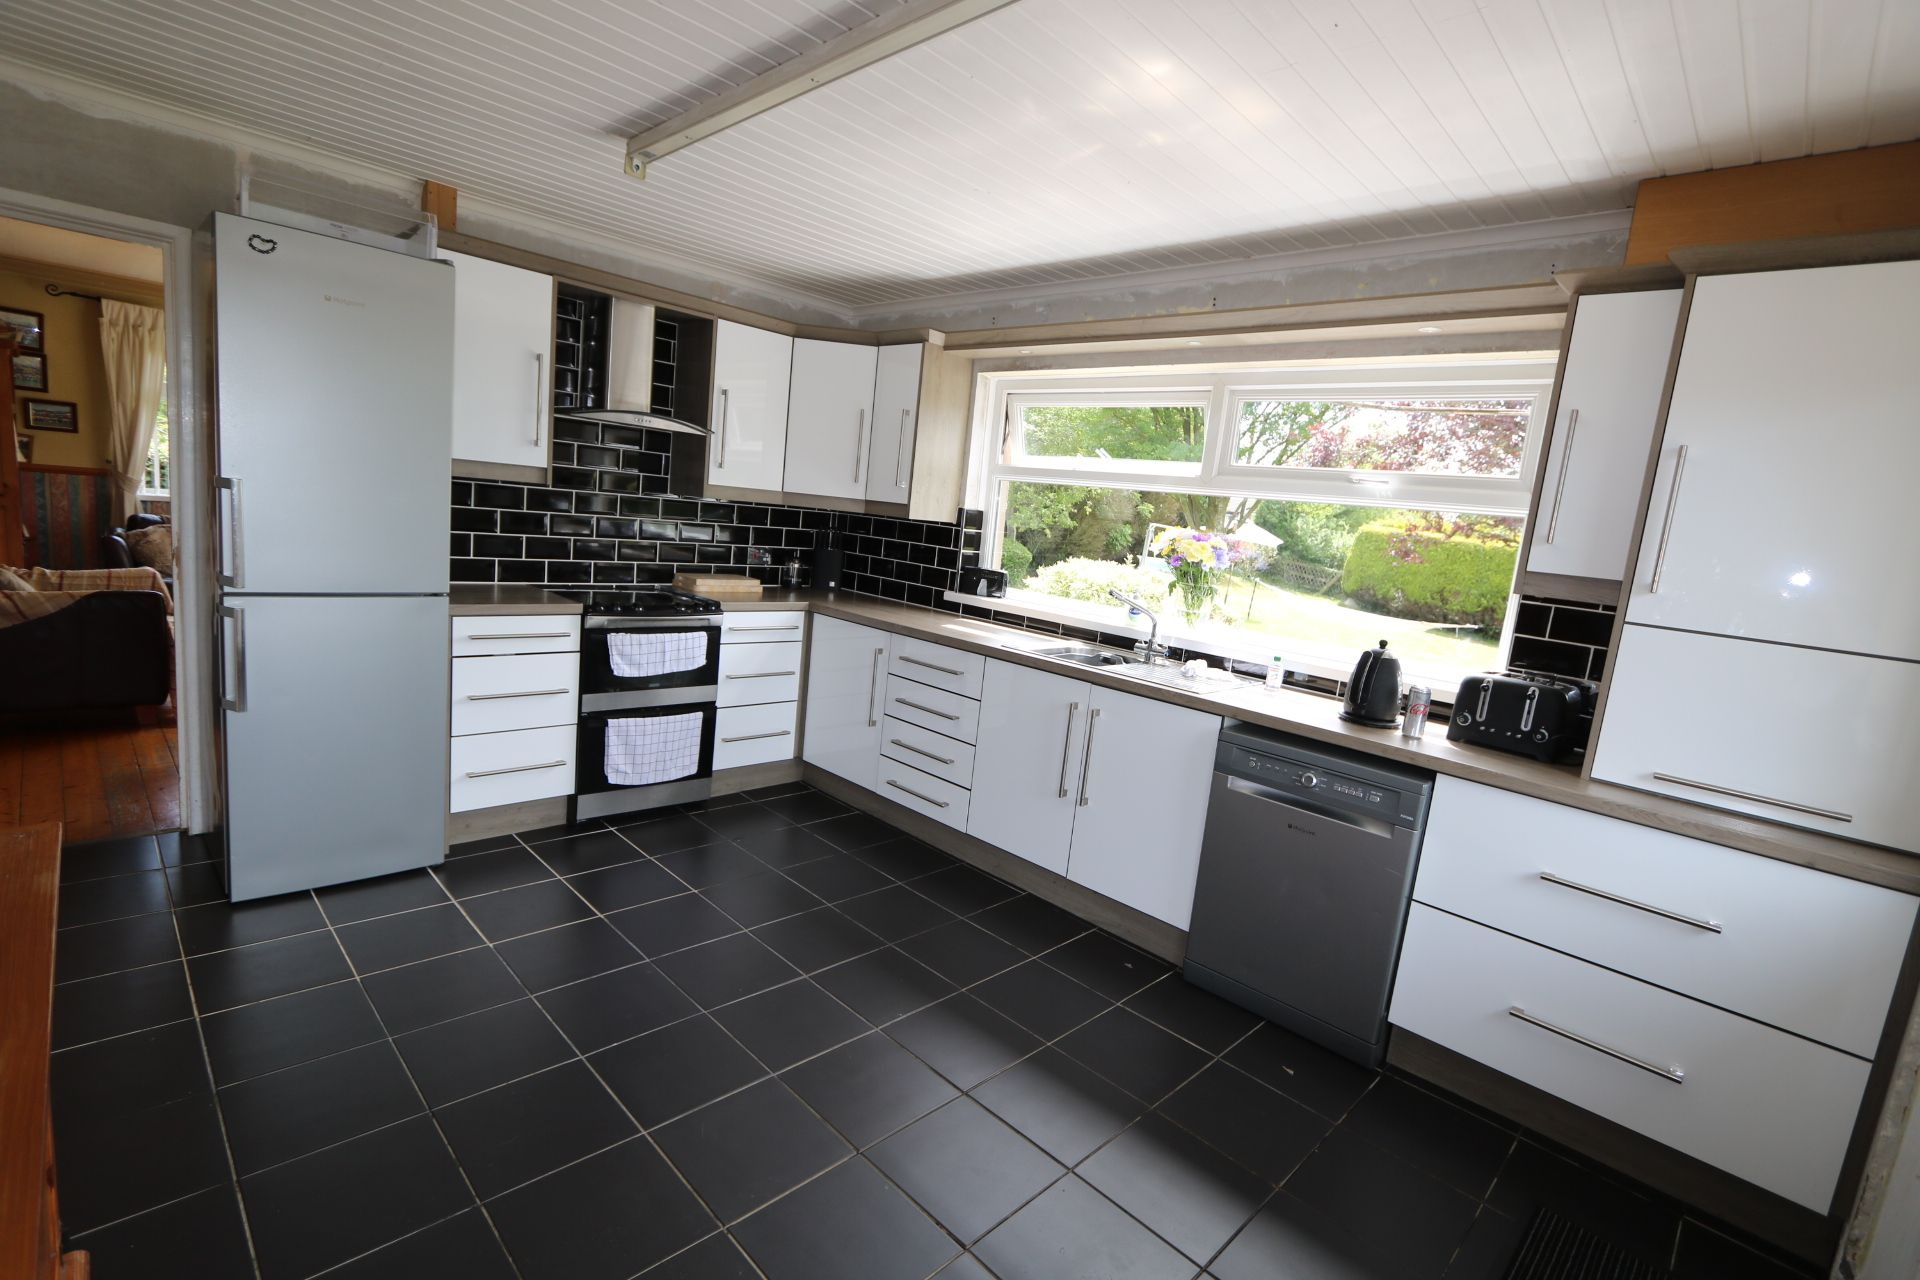 3 bedroom detached bungalow For Sale in Randalstown - Photograph 4